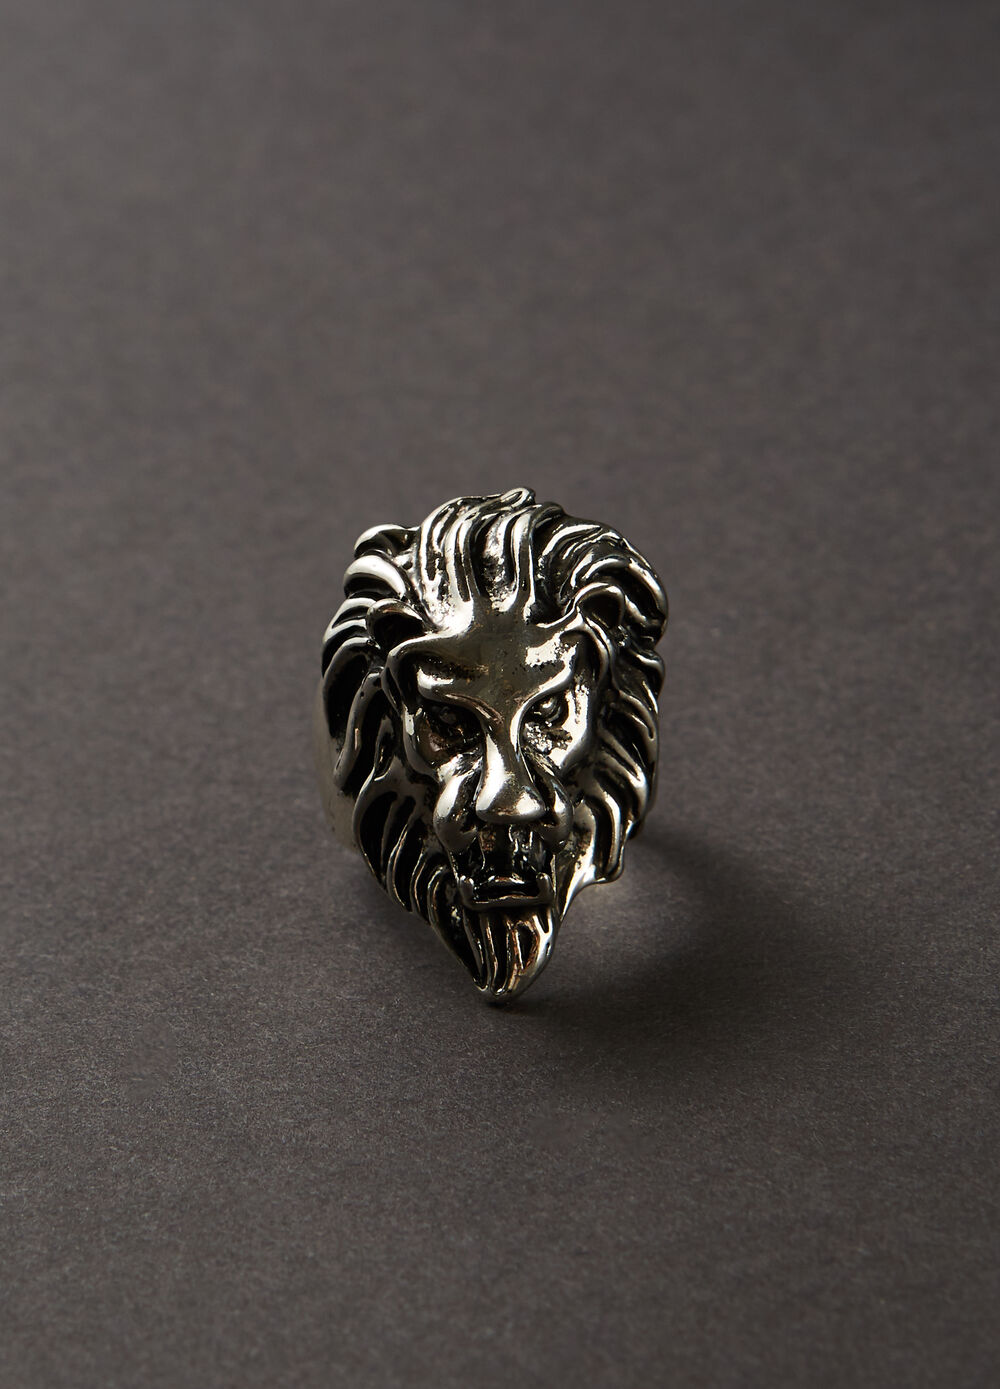 Steel ring with lion motif.